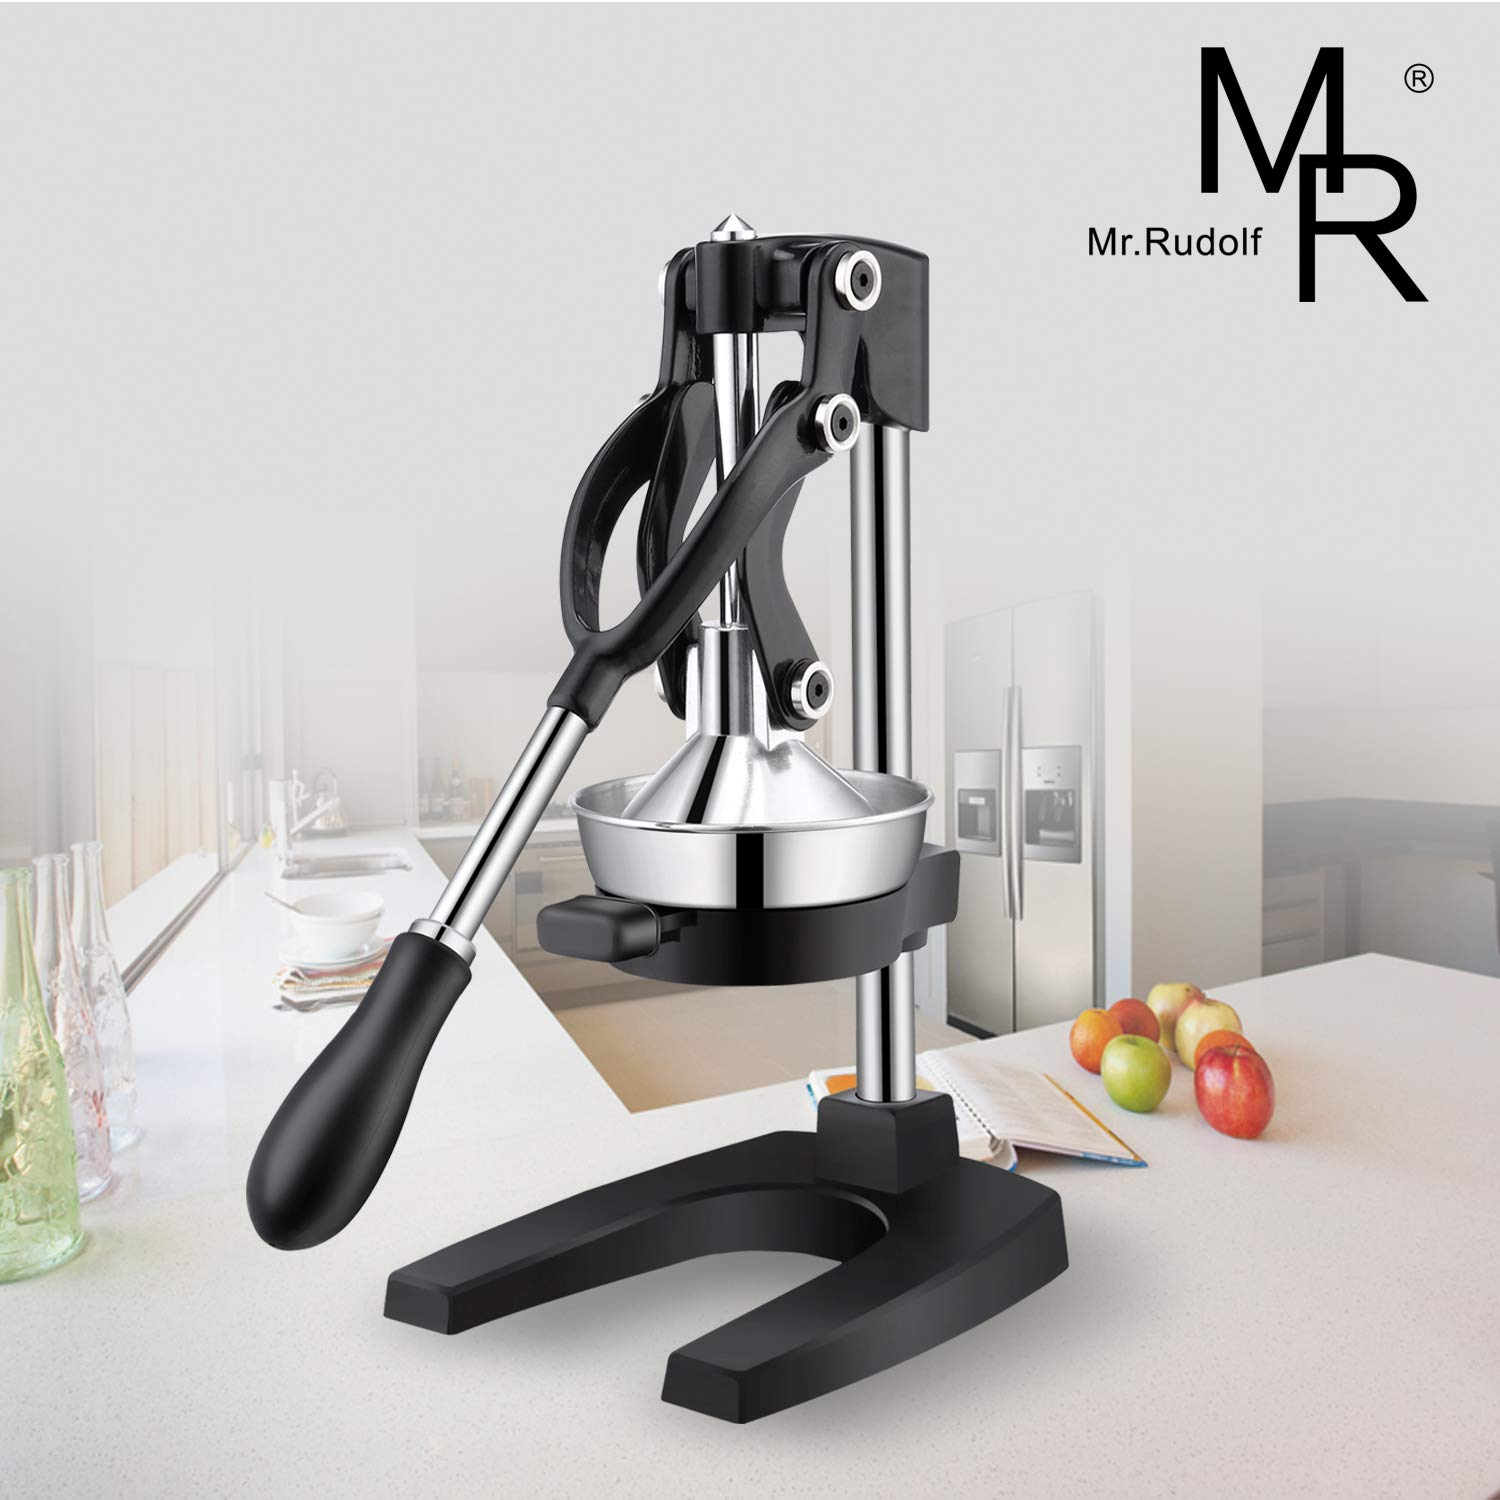 Large Citrus Juicer - Commercial Grade Press Orange and Lemon Press Juicing -Extracts Maximum Juice - Heavy Duty Cast Iron Base and Handle - Non Skid Suction Foot Base by Mr Rudolf